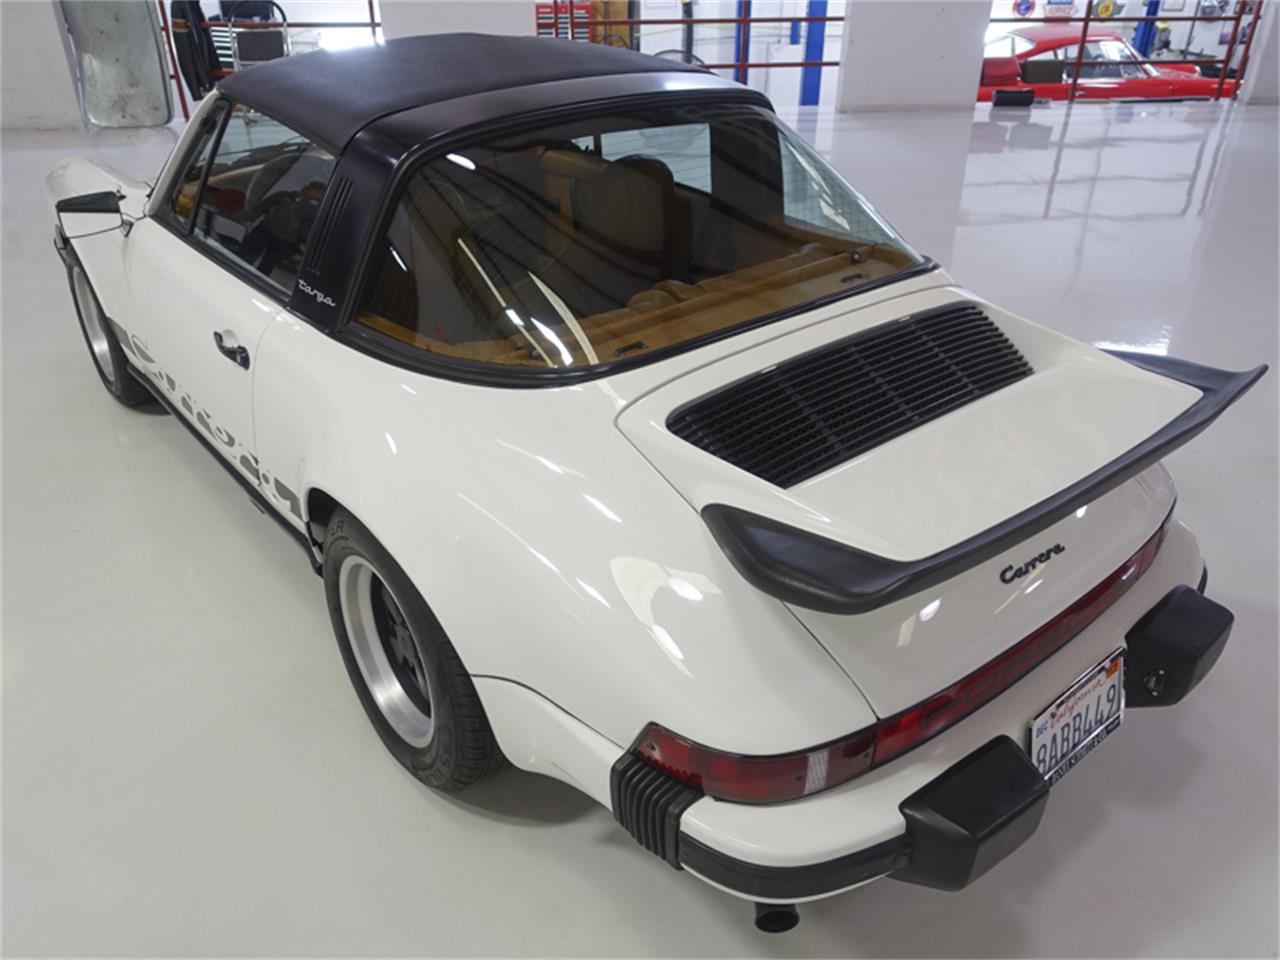 Large Picture of 1975 911 Carrera located in Missouri - $74,900.00 - PGEE